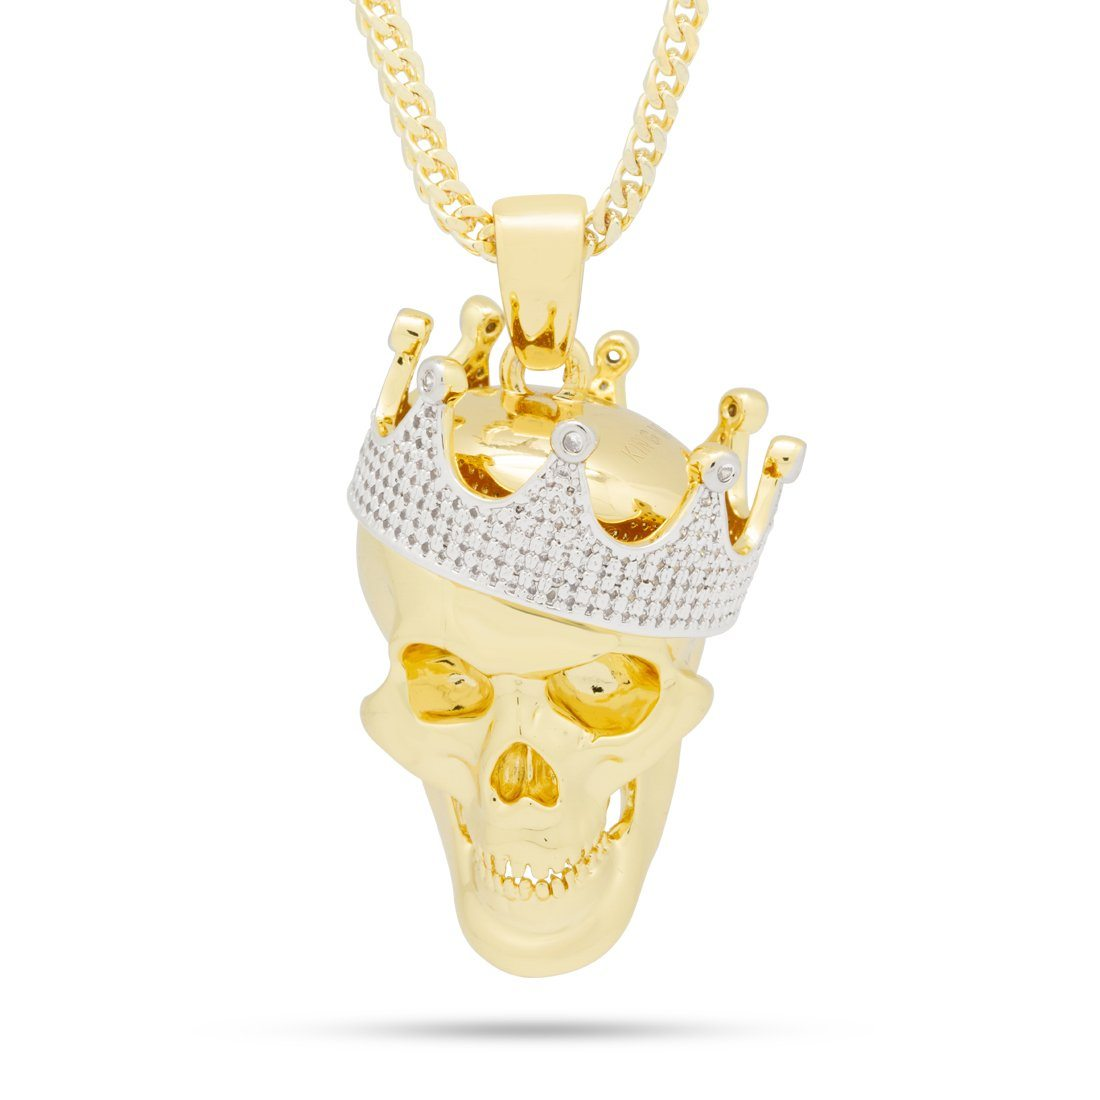 The Skull King Necklace